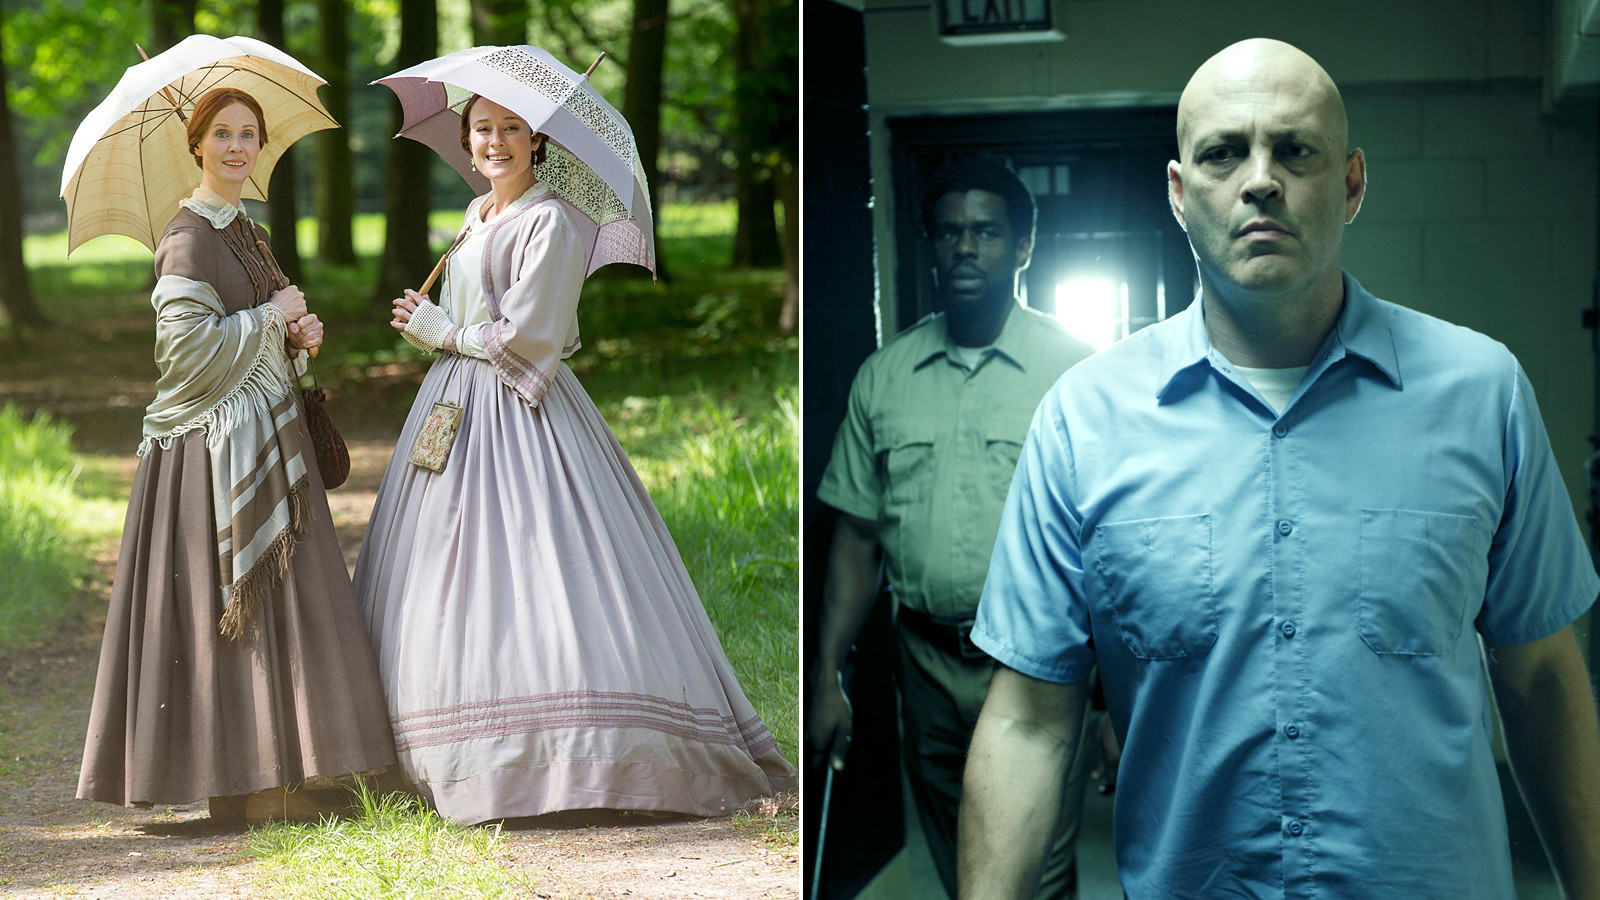 'A Quiet Passion' and 'Brawl in Cell Block 99'